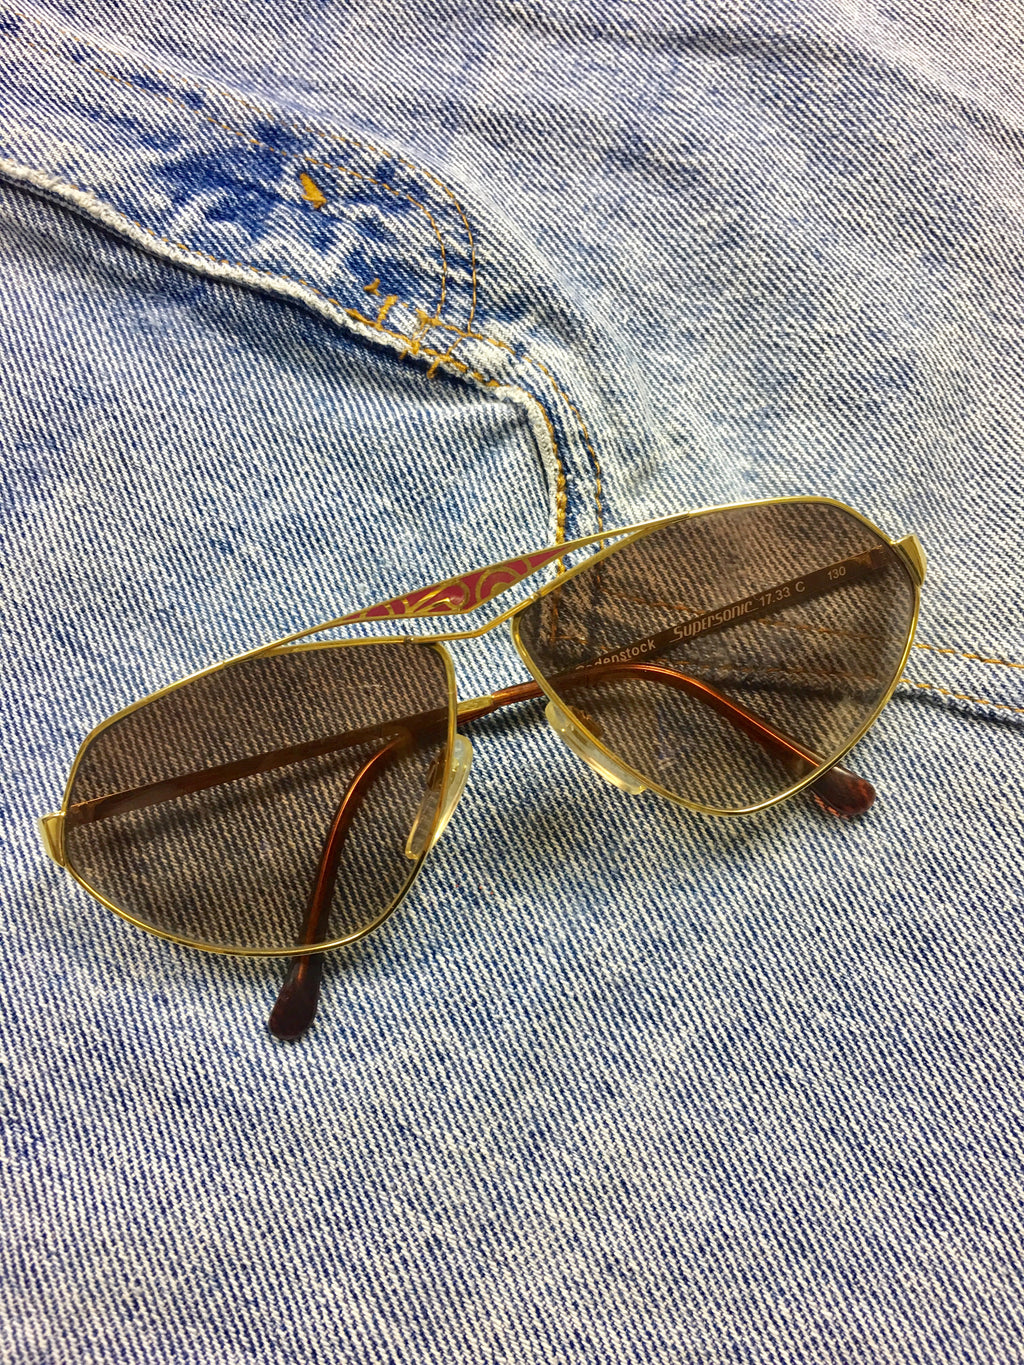 True Vintage Sunglasses - 1970s Loni Sunglasses